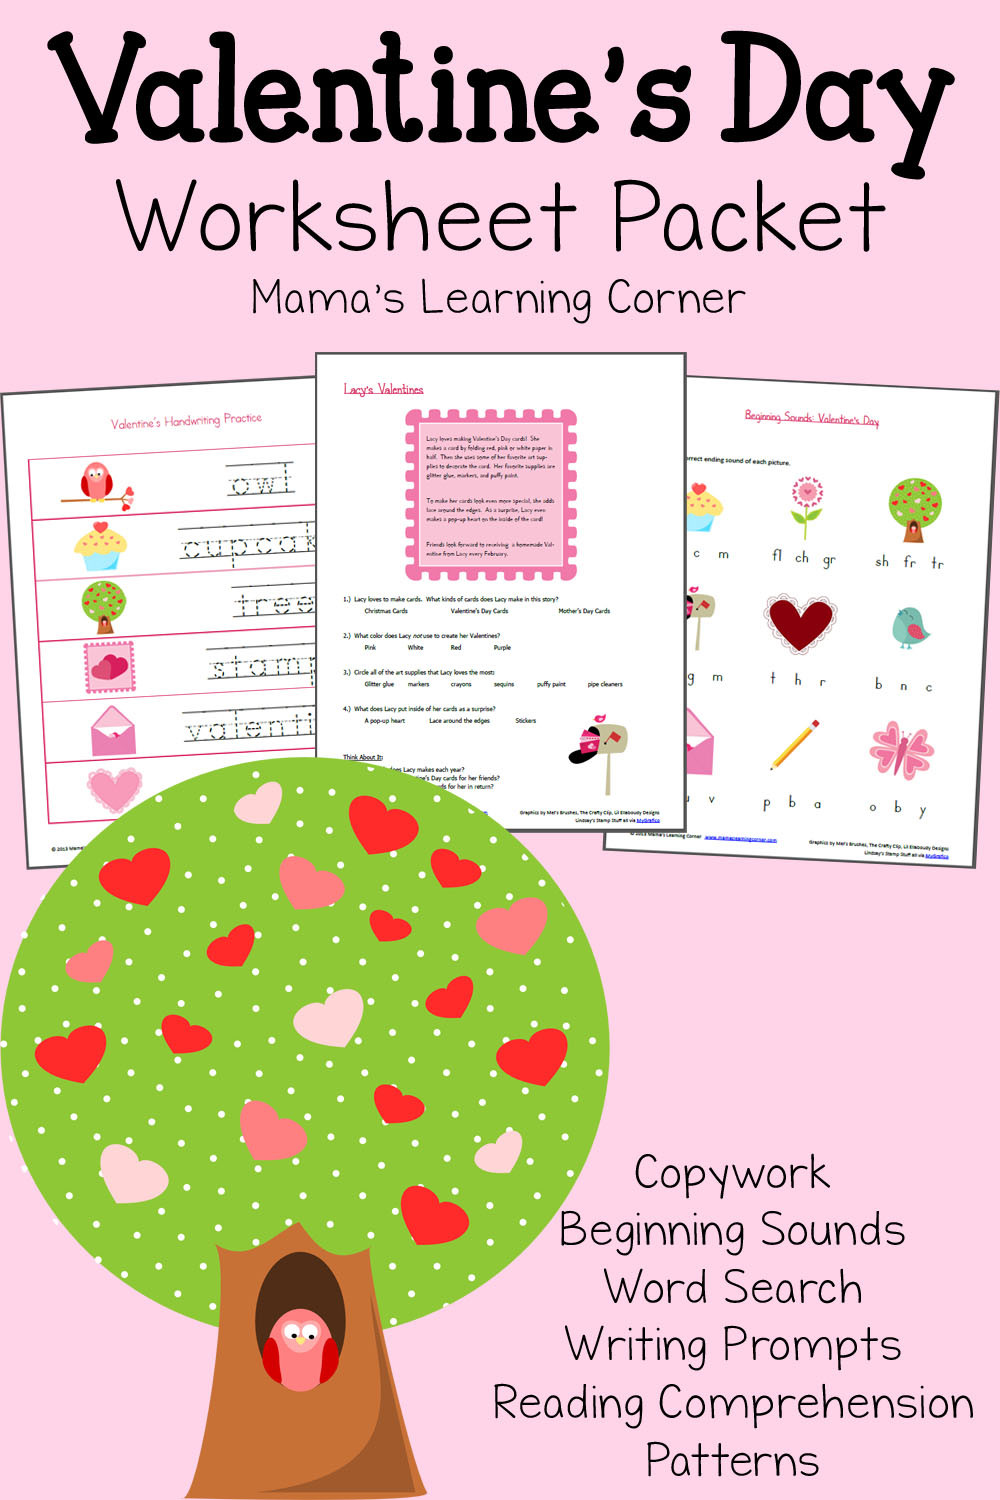 Valentine Day Reading Comprehension Worksheets Valentine S Day Worksheet Packet Mamas Learning Corner